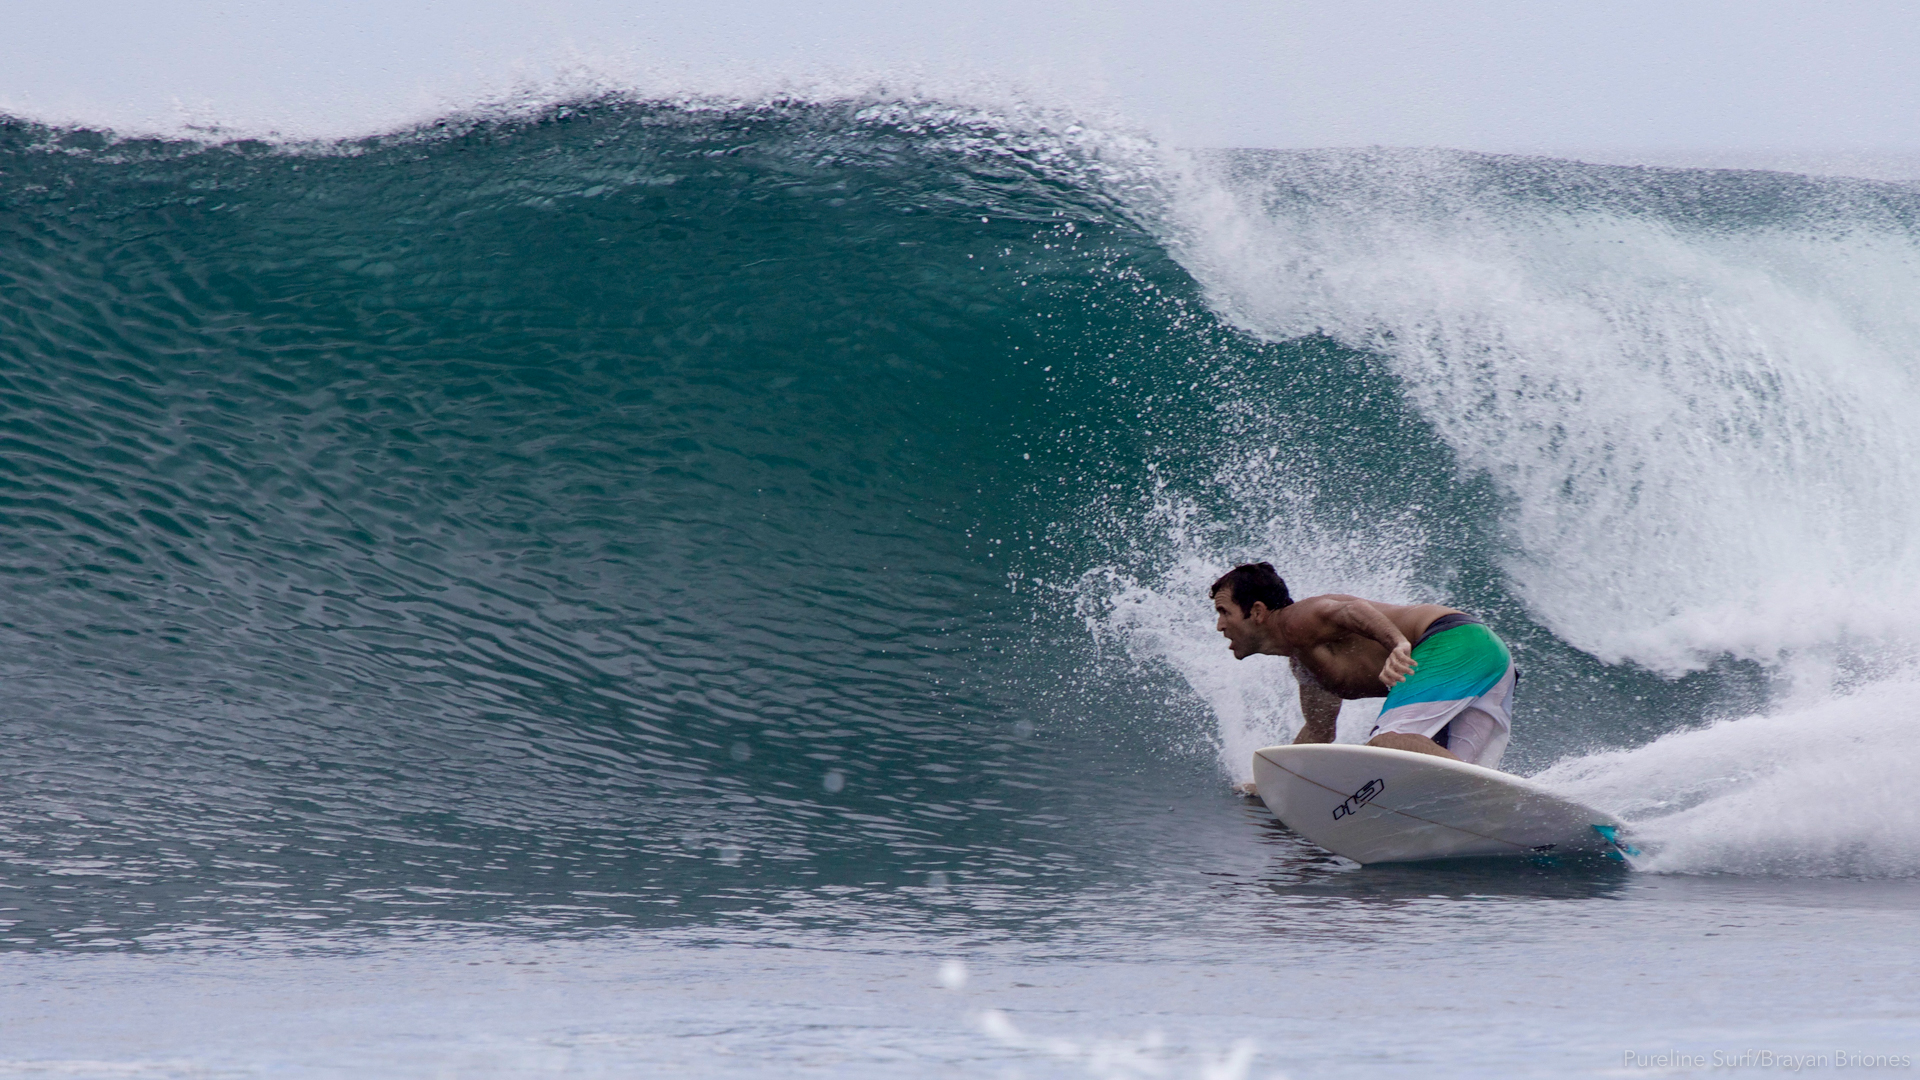 A Pureline surfer performing a bottom turn at a right hand beach break in Costa Rica, a Pureline Surf coaching destination.